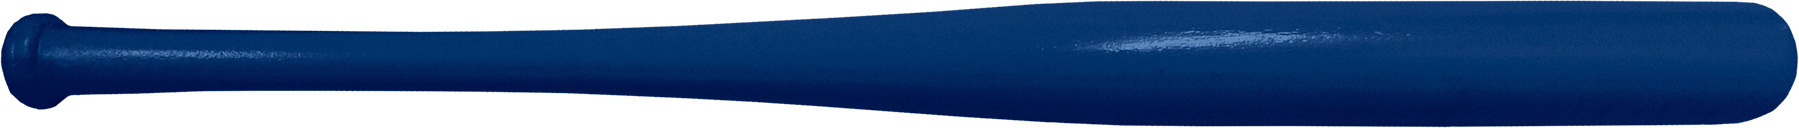 novelty royal blue baseball bat souvenir baseball bat